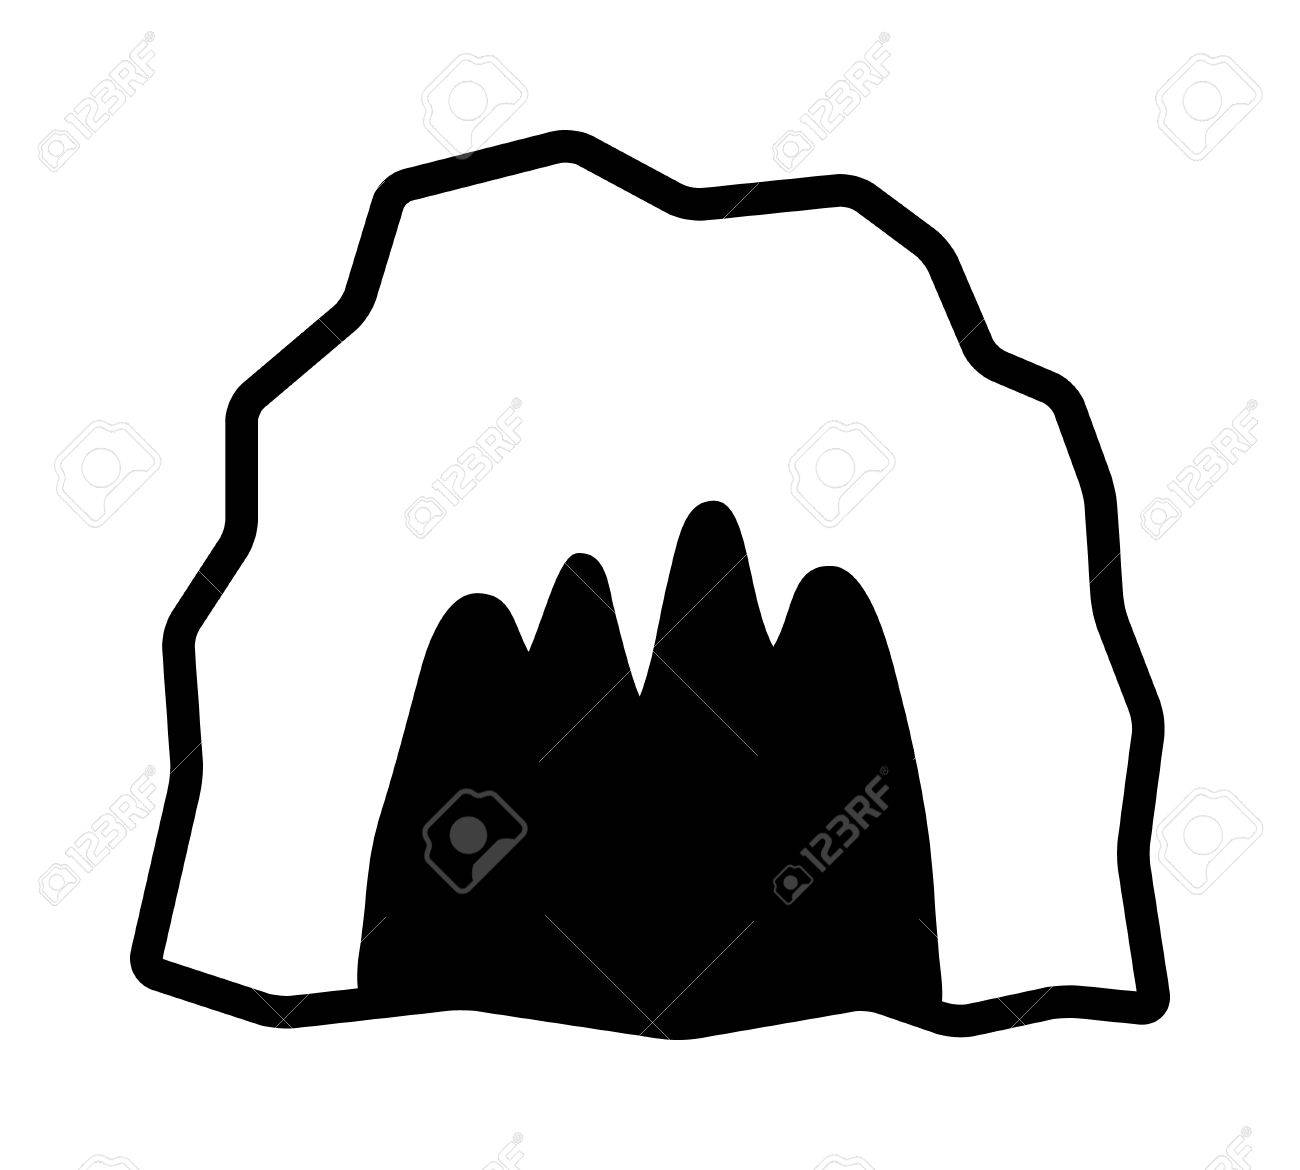 hight resolution of 1300x1170 cave cavern animal den or dungeon line art vector icon